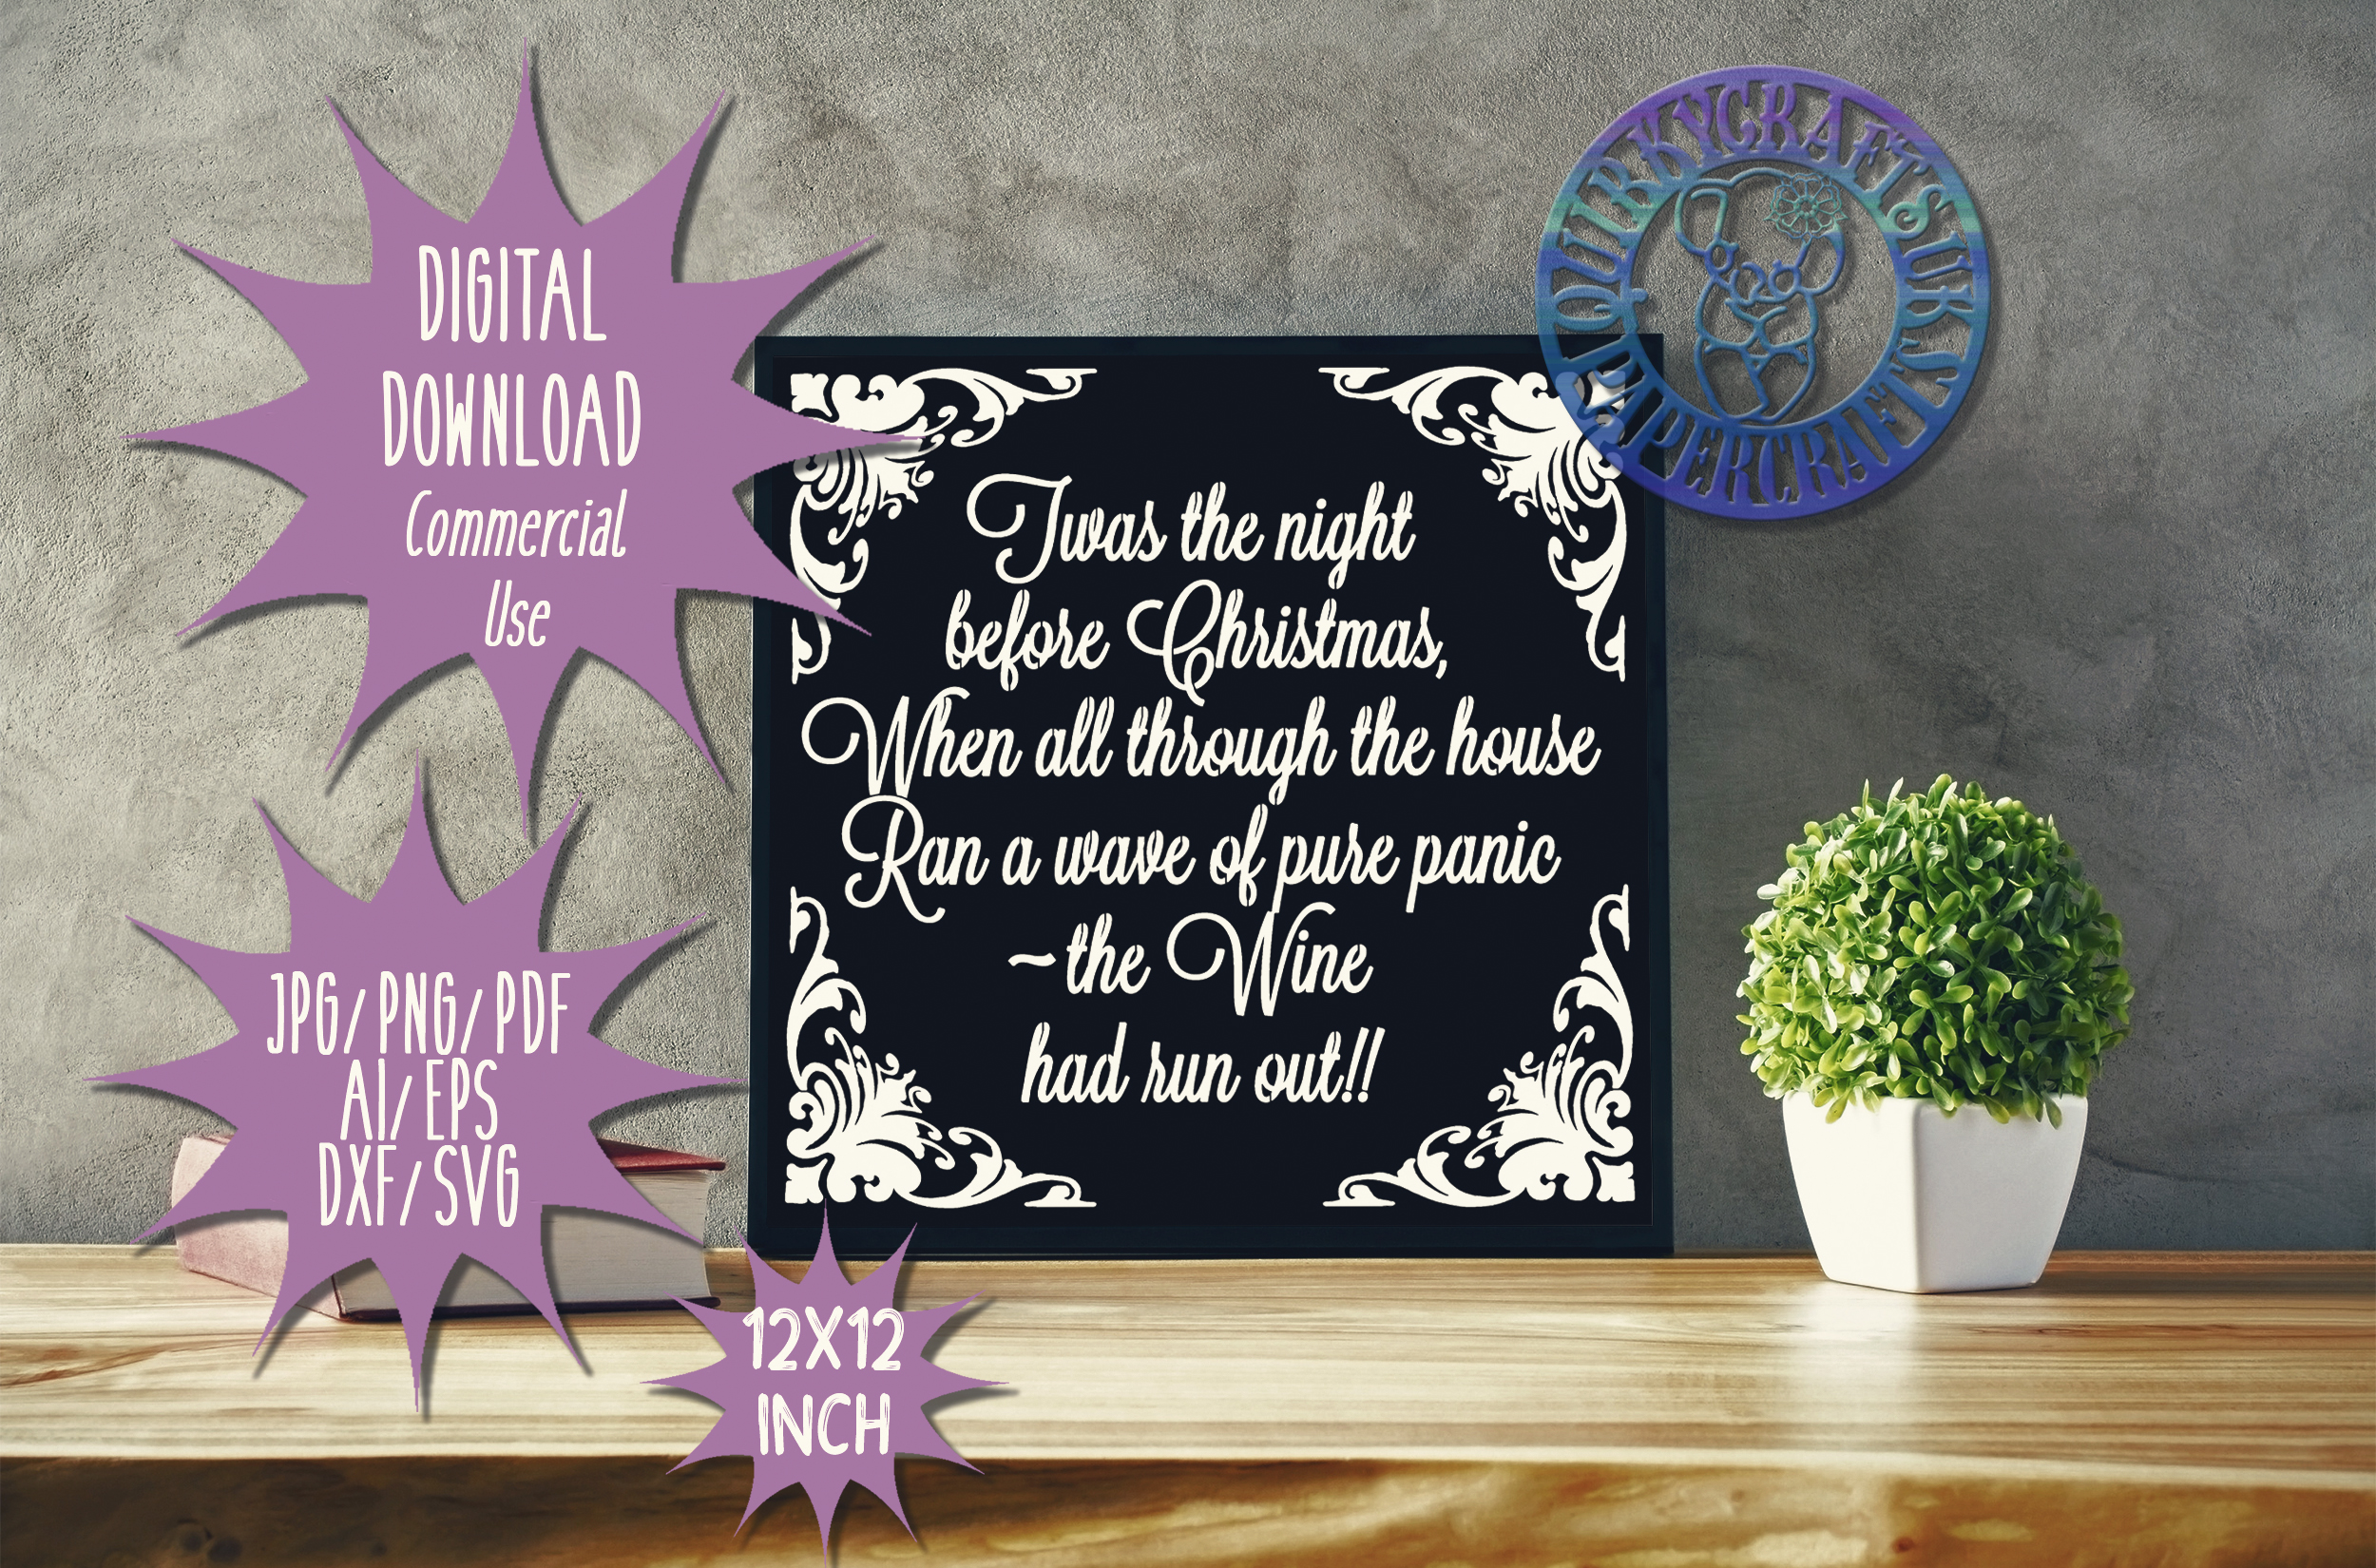 60 brand new ADVENT Templates jpg/png/ai/dxf/svg example image 16